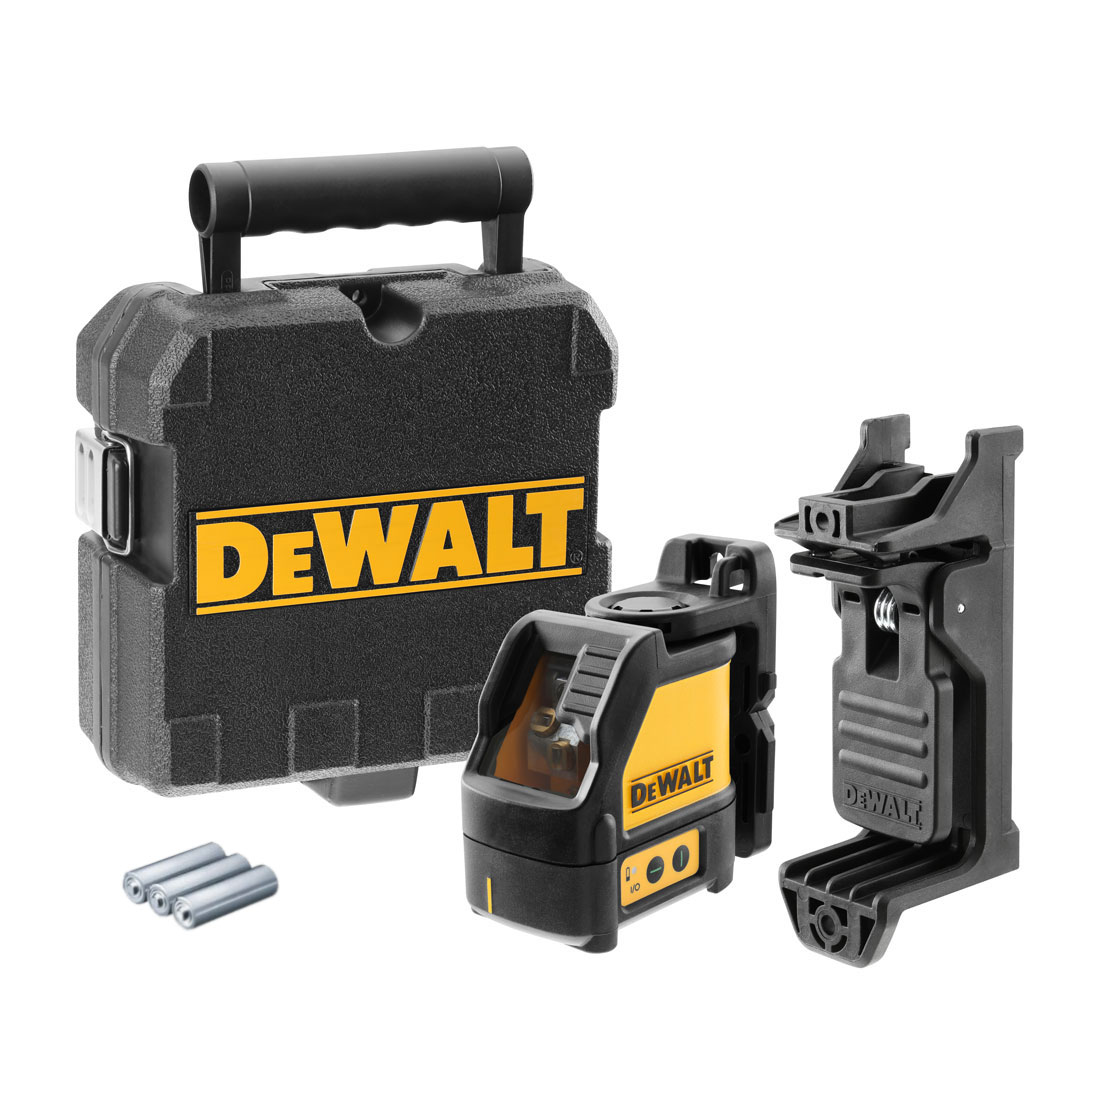 DeWalt DW088CG Green Beam Self Levelling Cross Line Laser Level Kit